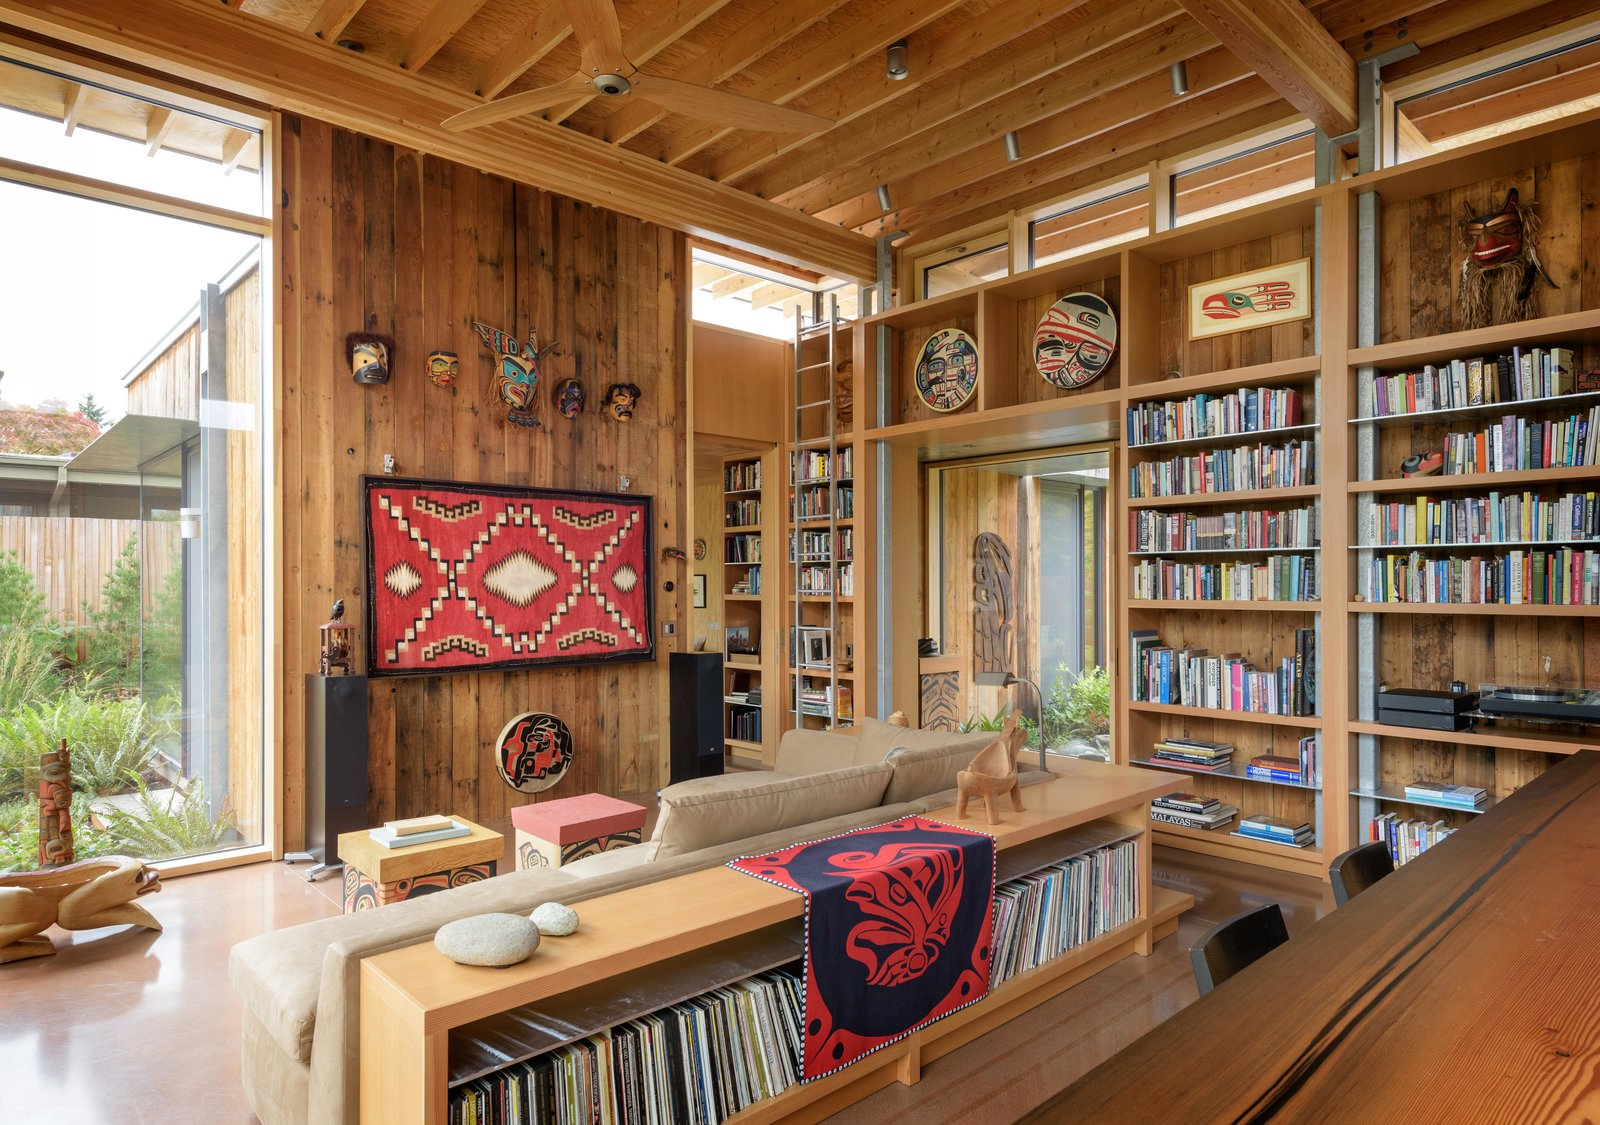 Living Room, Sofa, End Tables, Sectional, Concrete Floor, Bookcase, and Coffee Tables City Cabin | Olson Kundig  Photo 7 of 13 in Immersed in Nature, This City Cabin Targets Net-Zero Energy from City Cabin